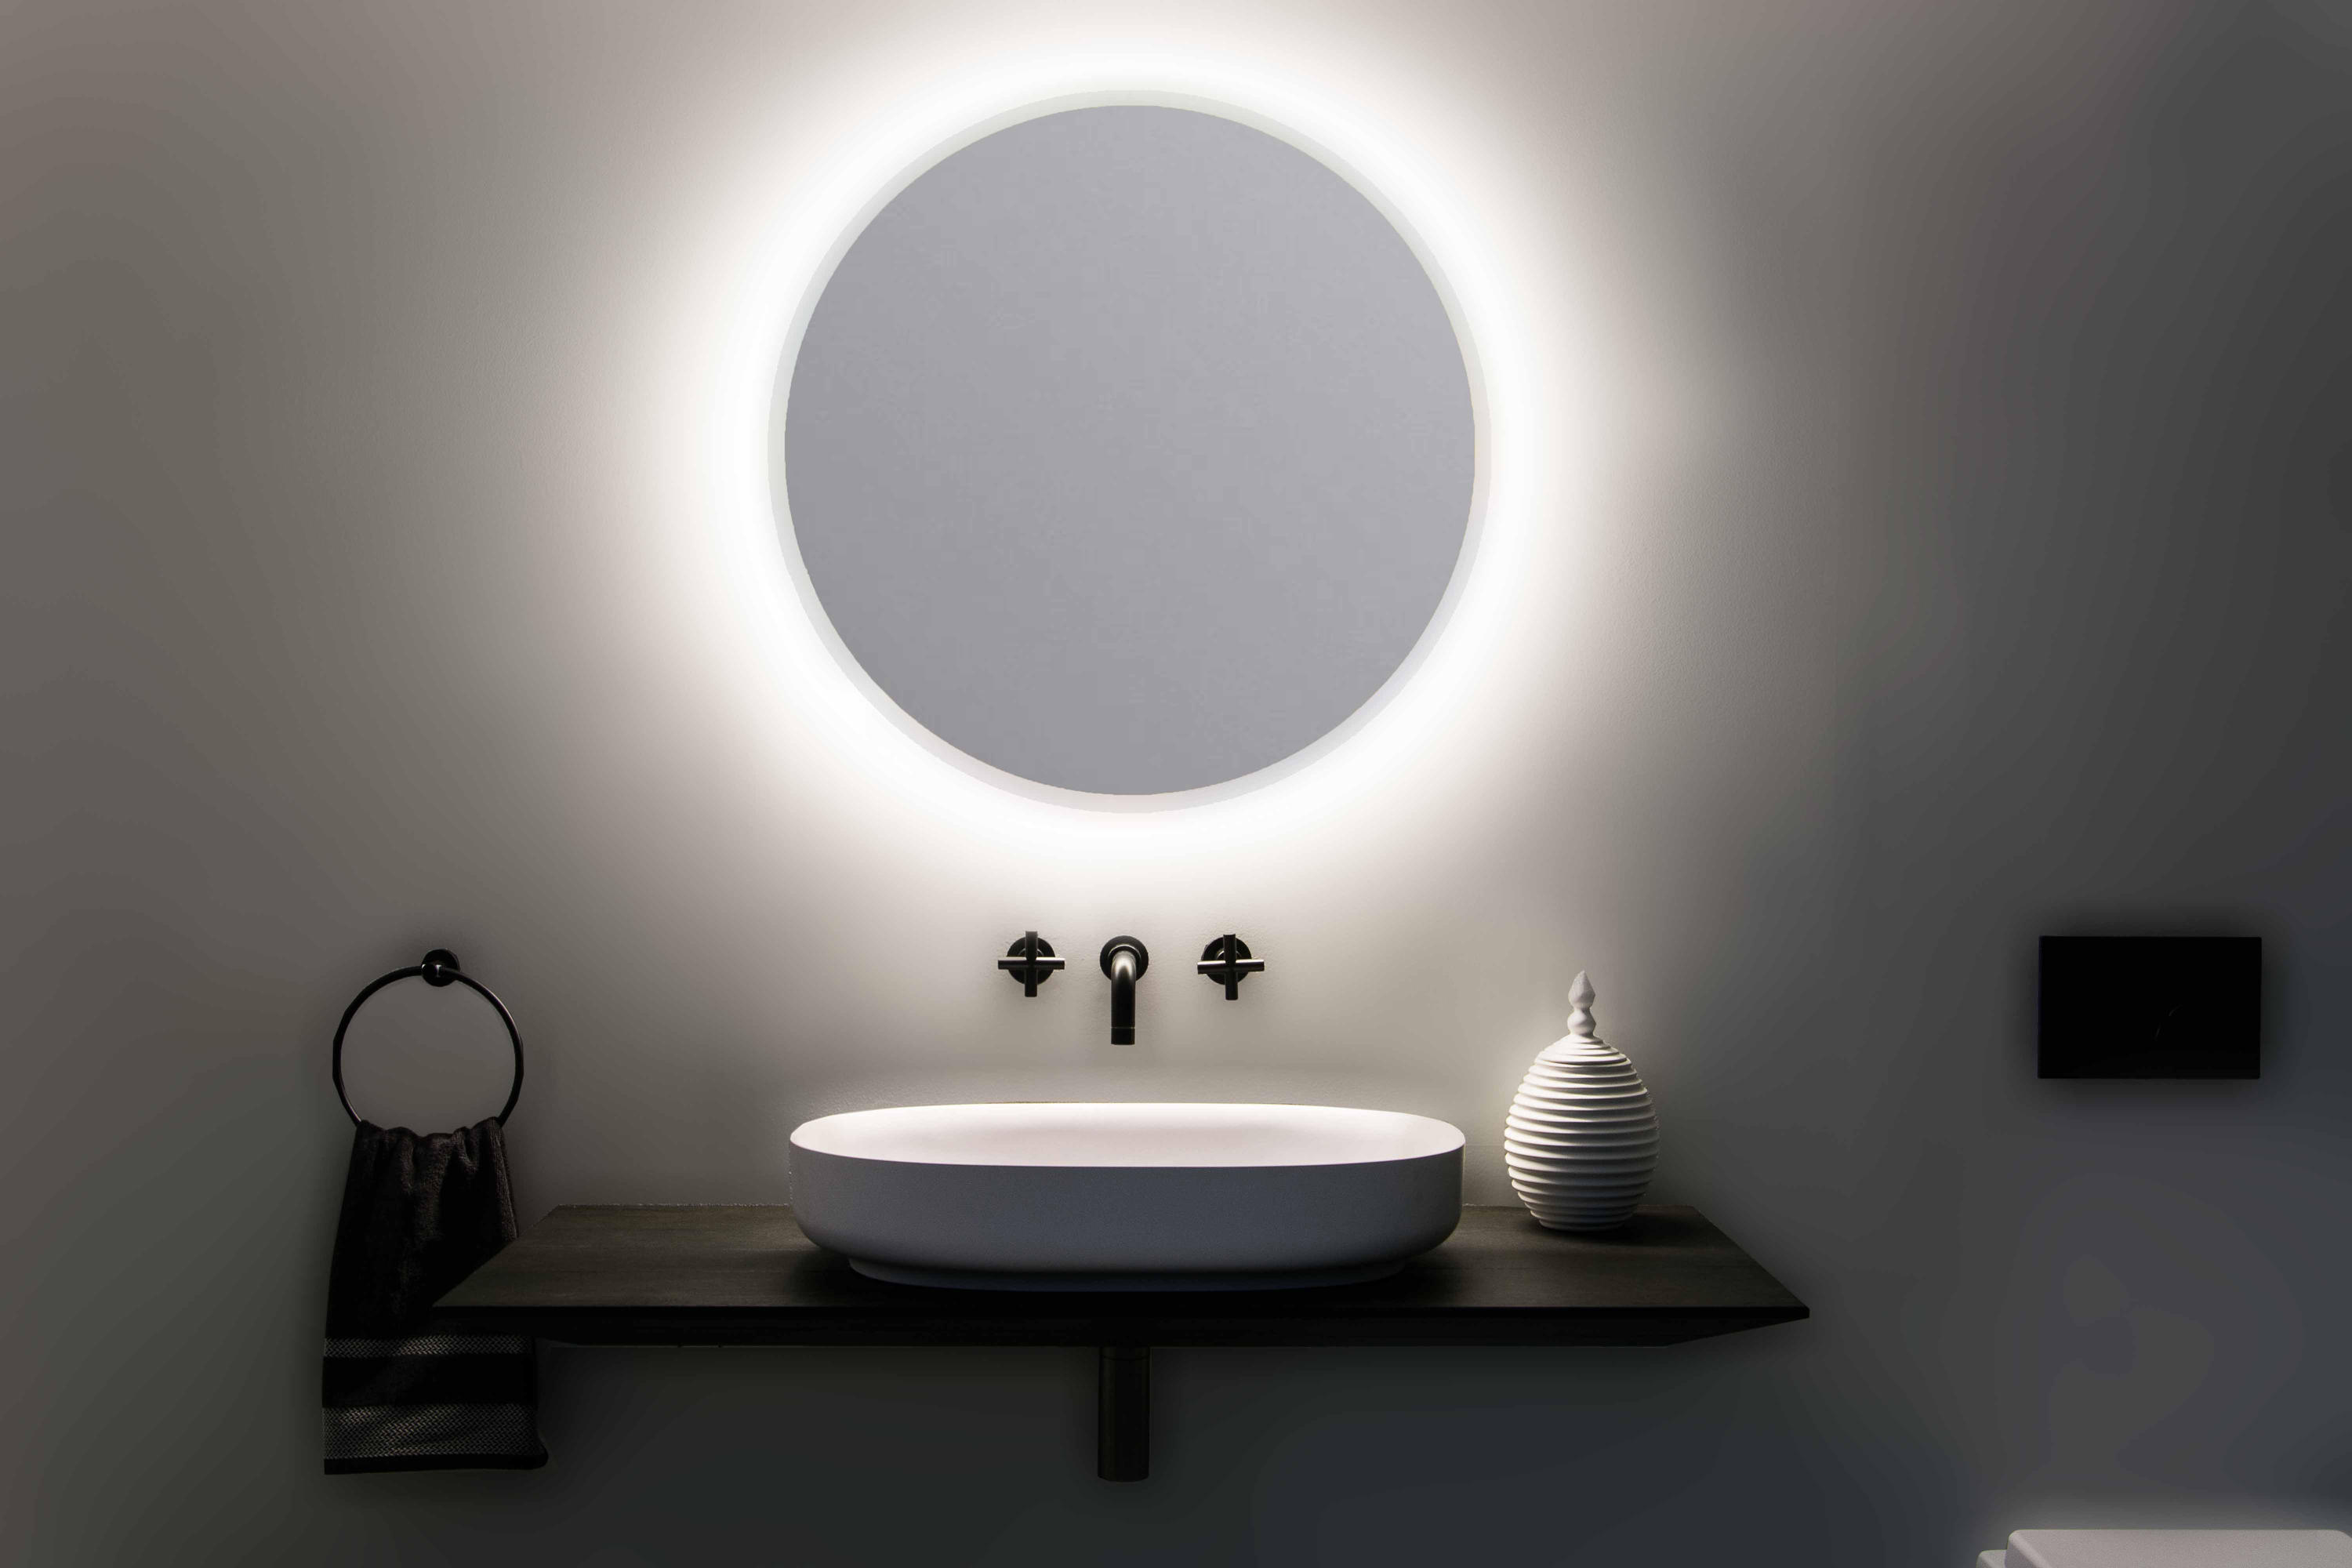 Bagno Design London Urban Freestanding Bathtub Bathtubs From Bagnodesign